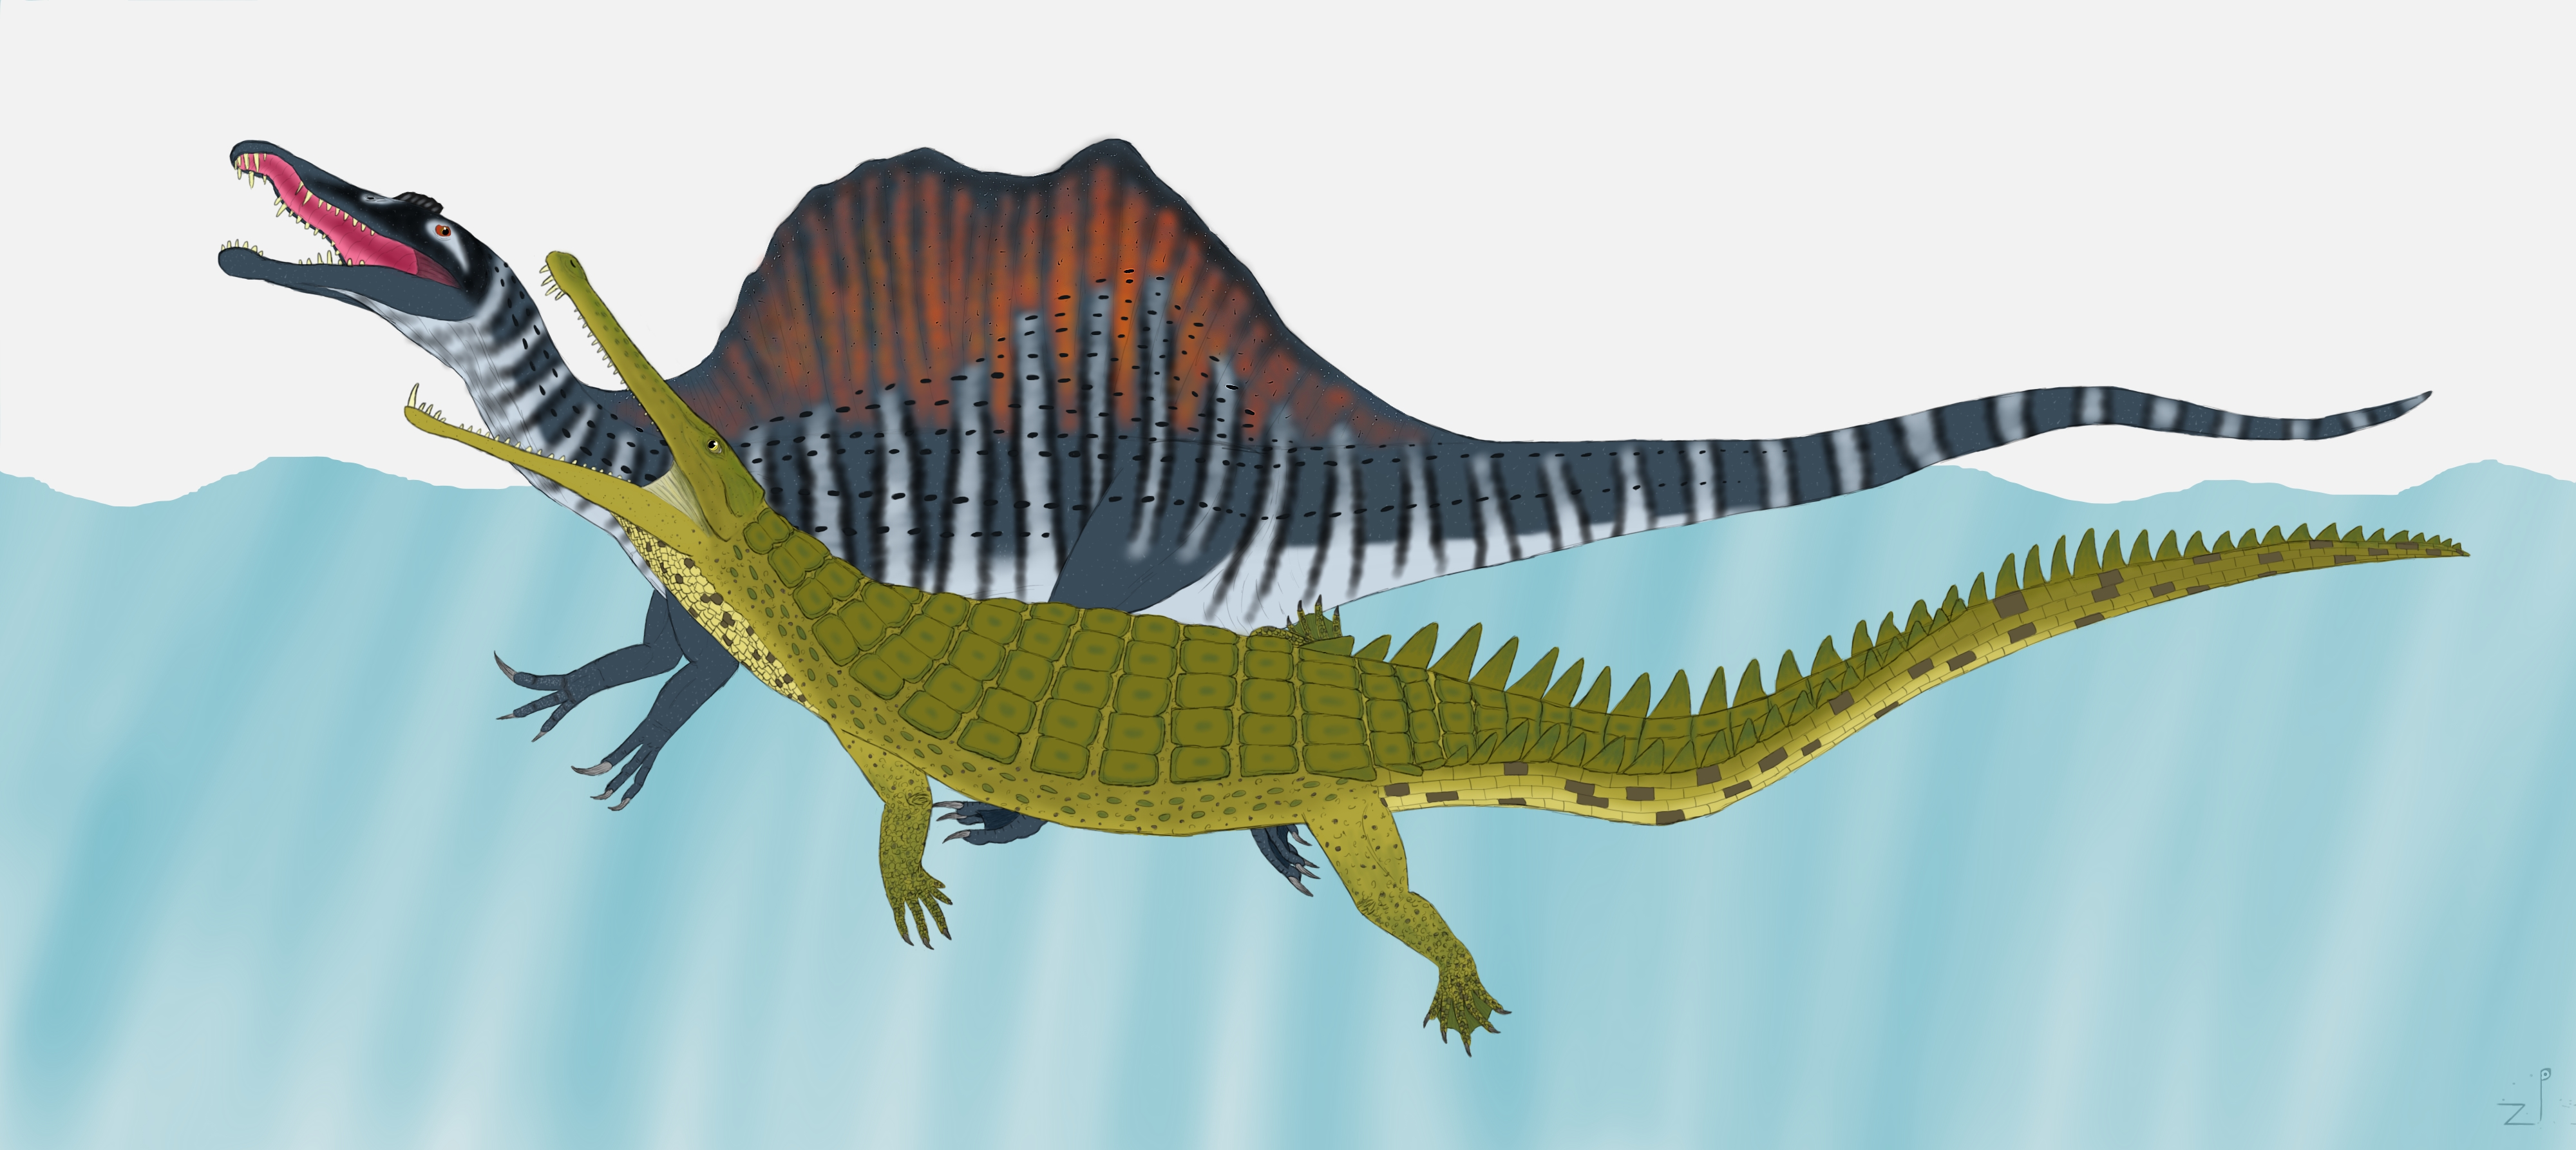 Undescribed Giant Croc by ZoPteryx on DeviantArt